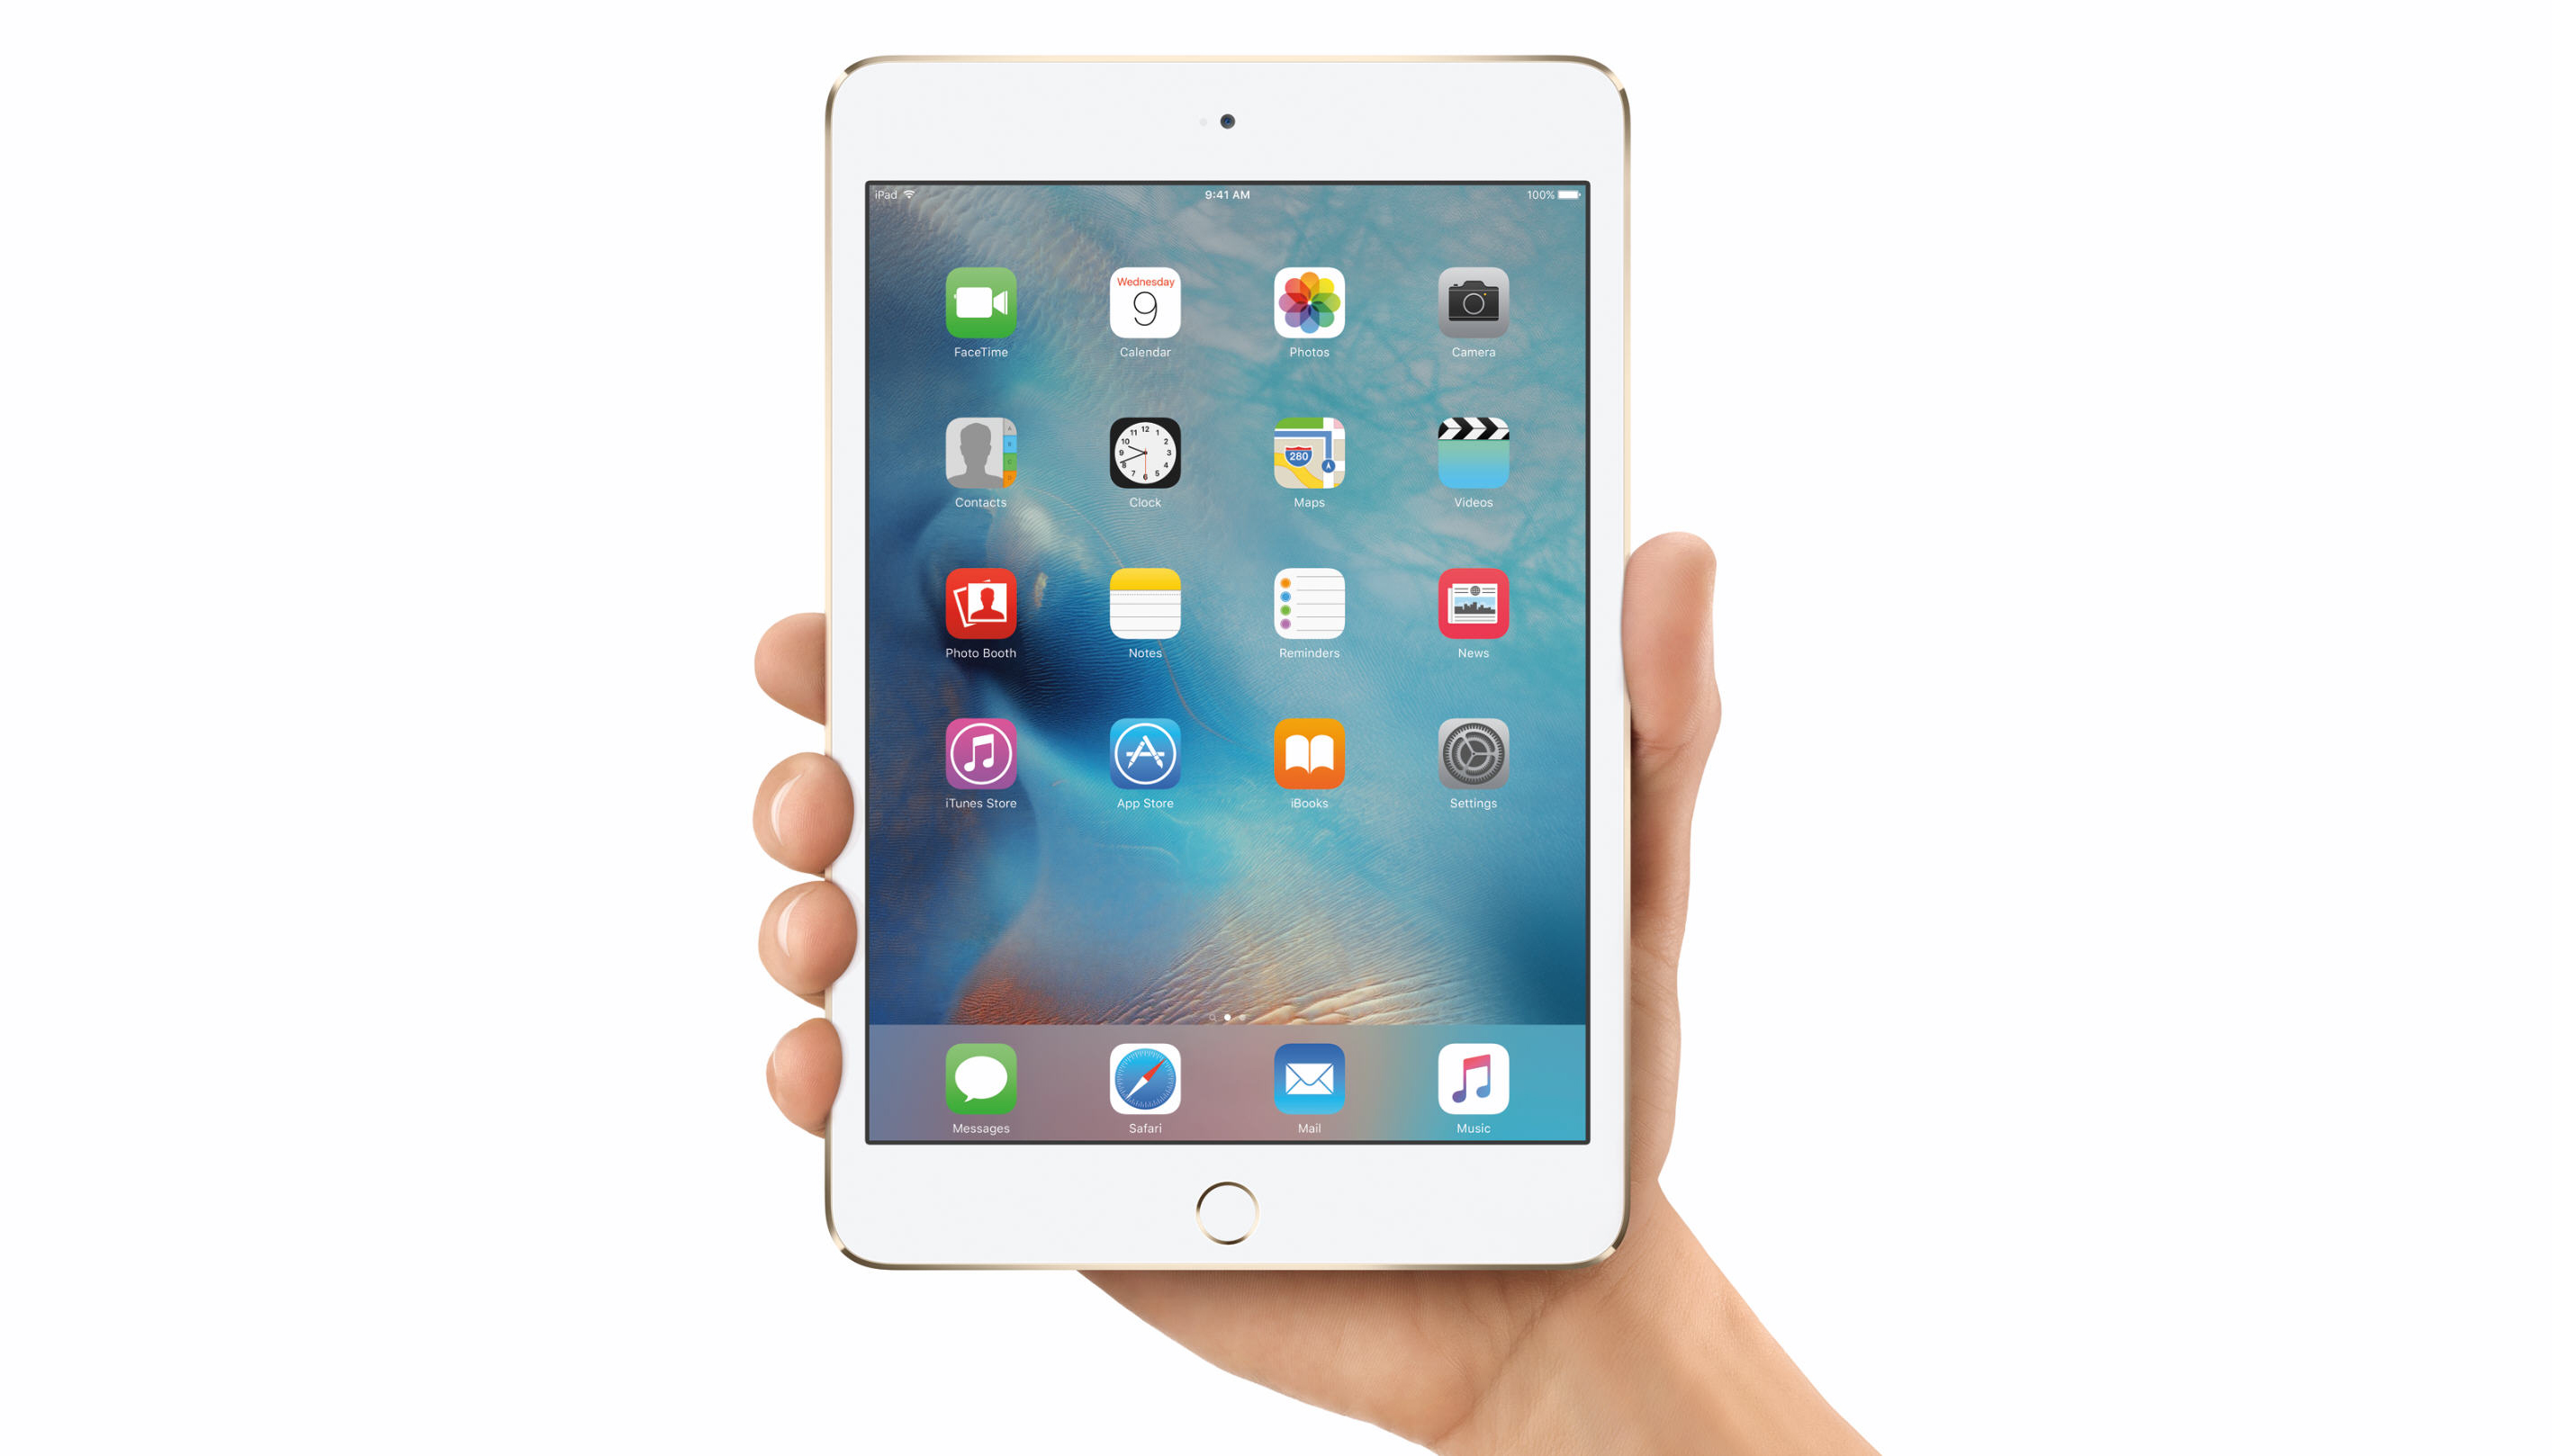 Oh Yes, There's A New Ipad Mini Too